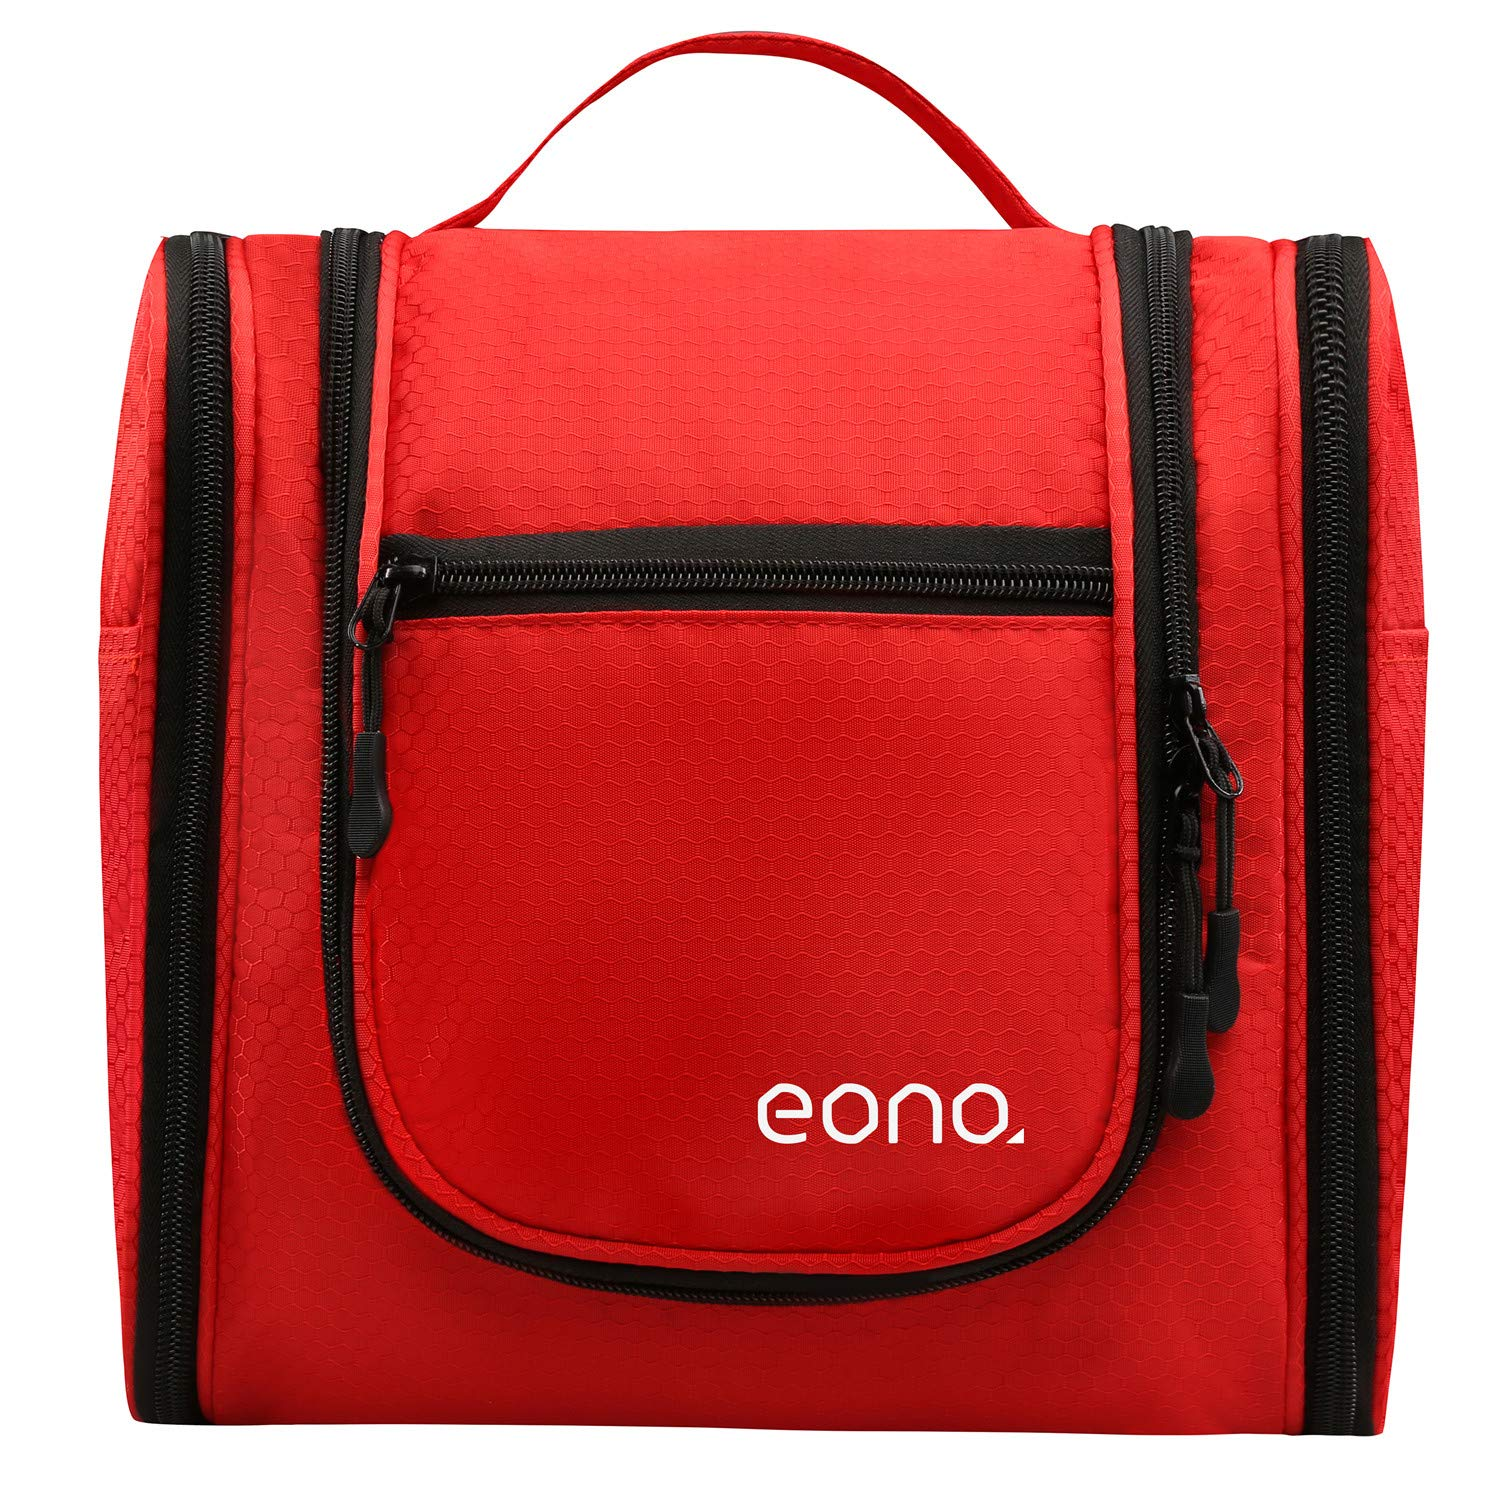 Eono Essentials Large Toiletry Bag